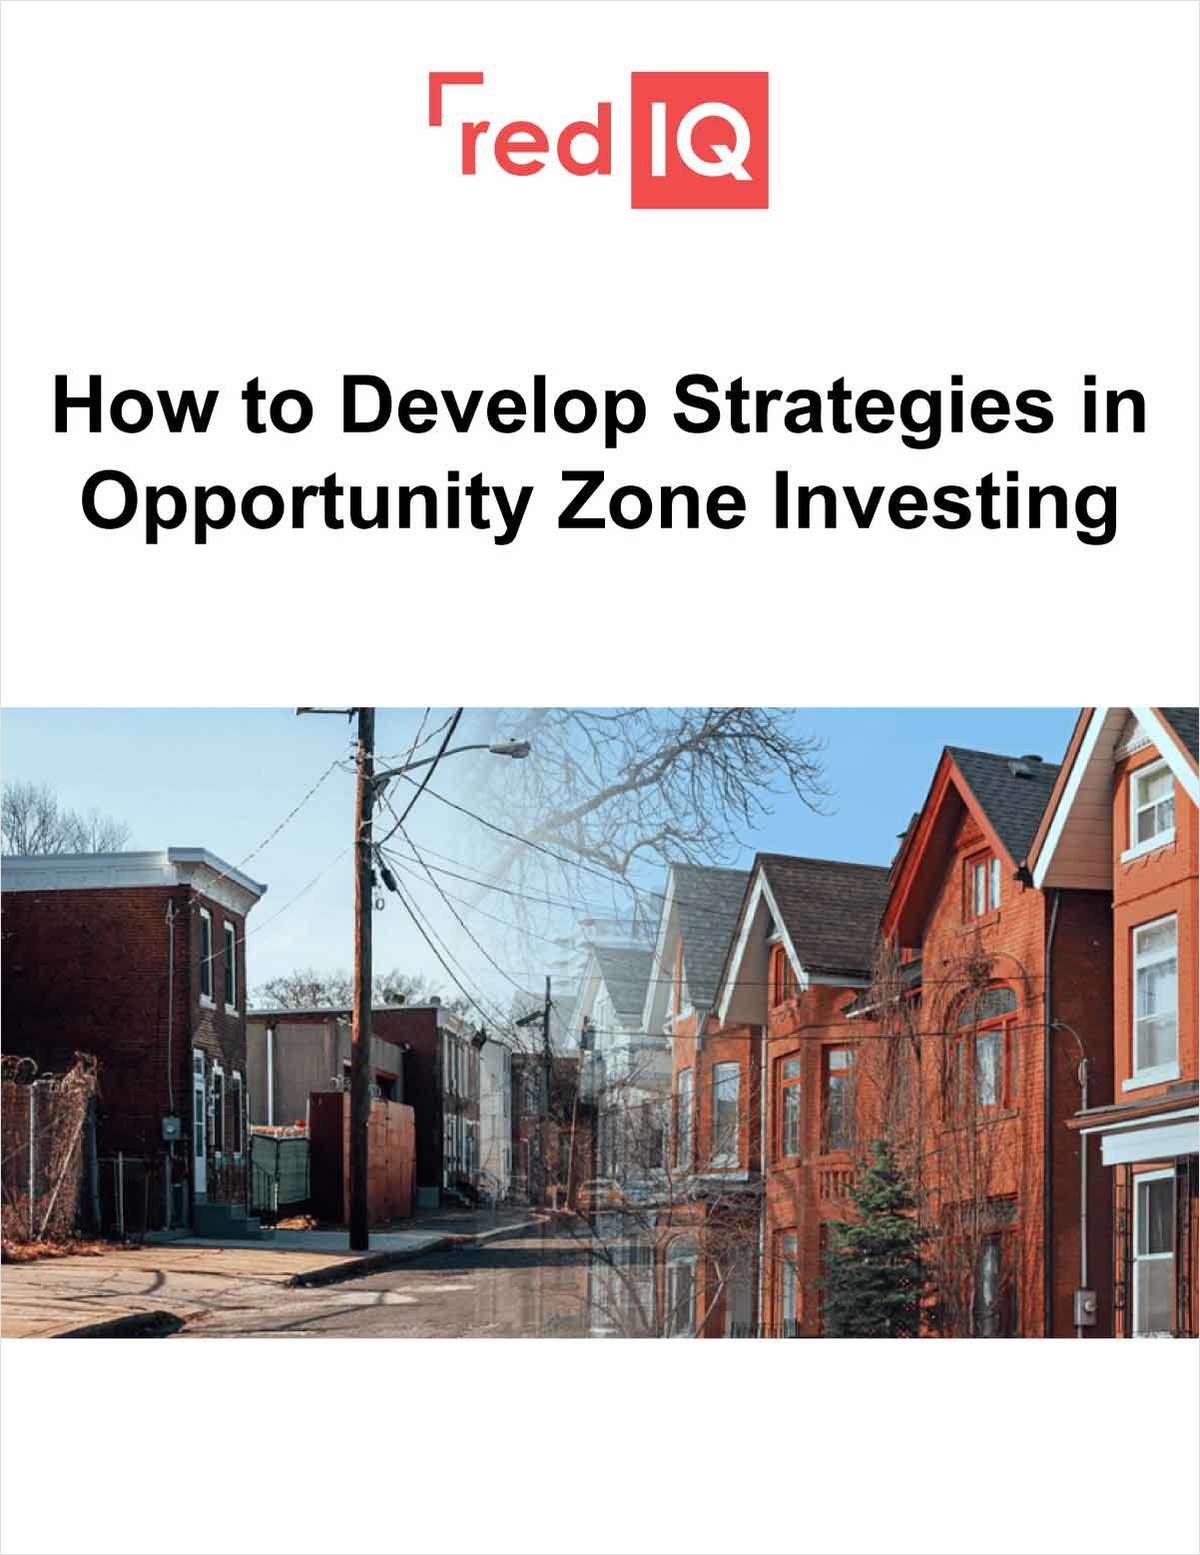 How to Develop Strategies in Opportunity Zone Investing